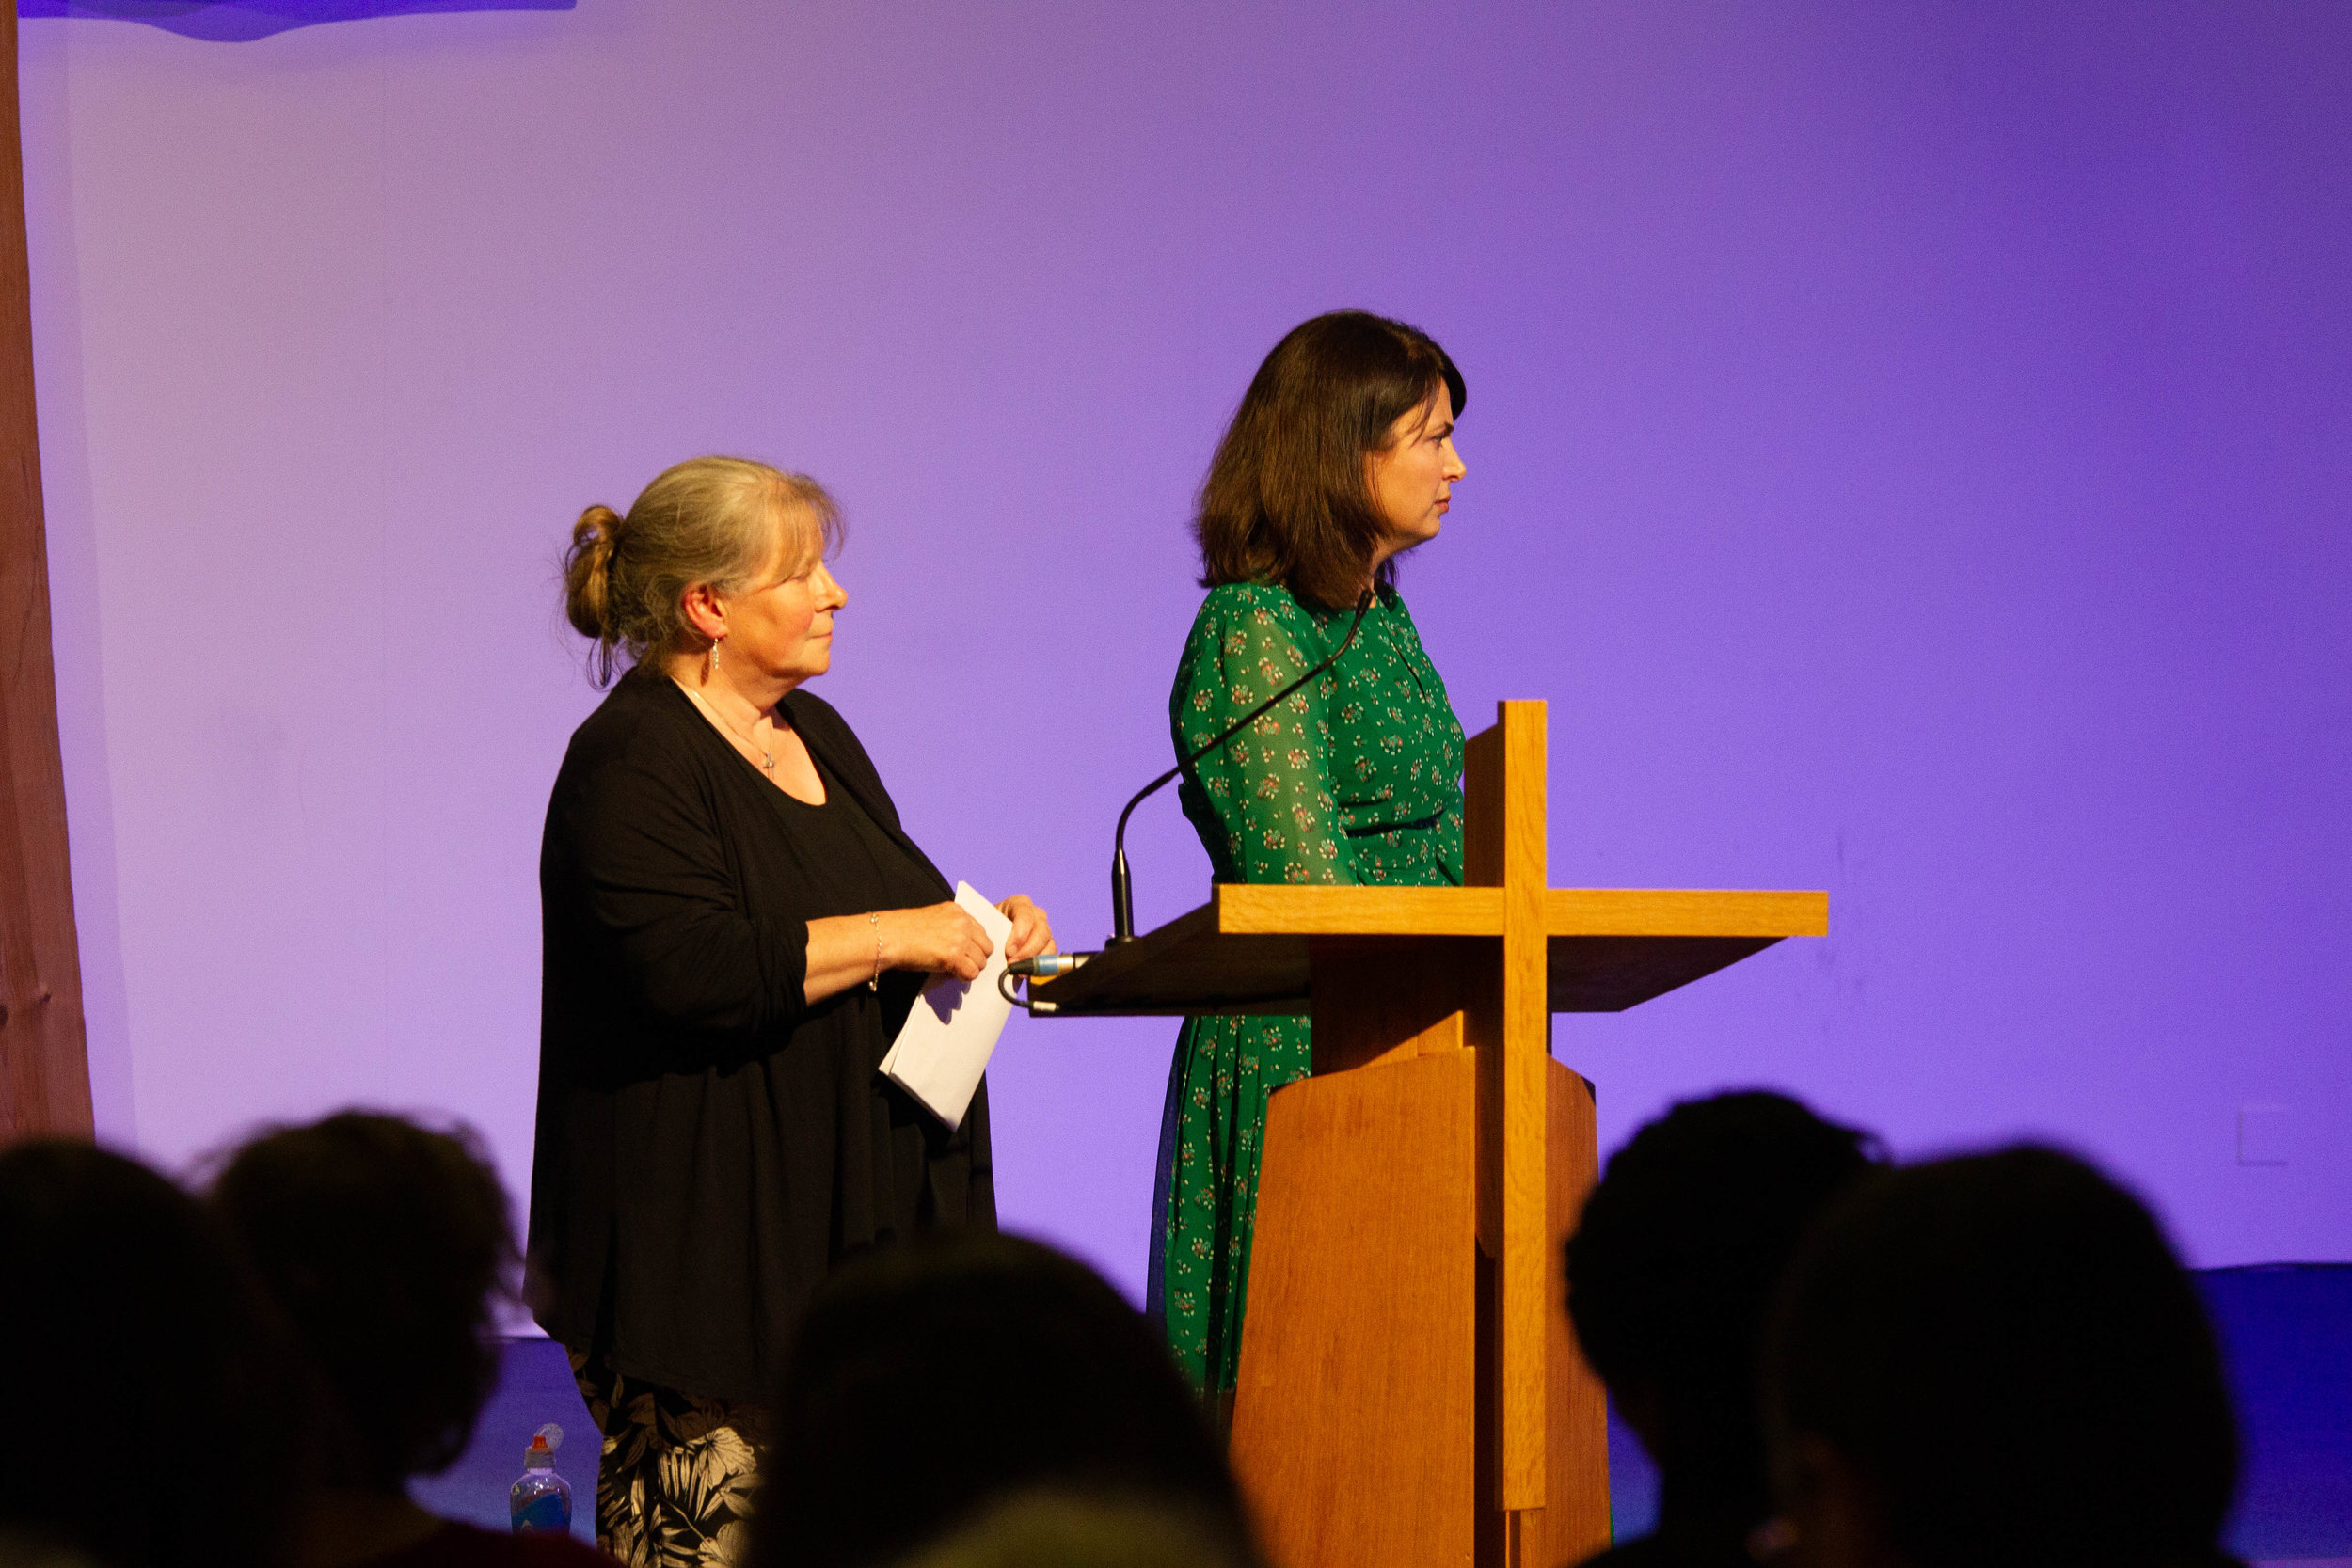 Clare with host for the evening and lwpt ceo amelia gosal